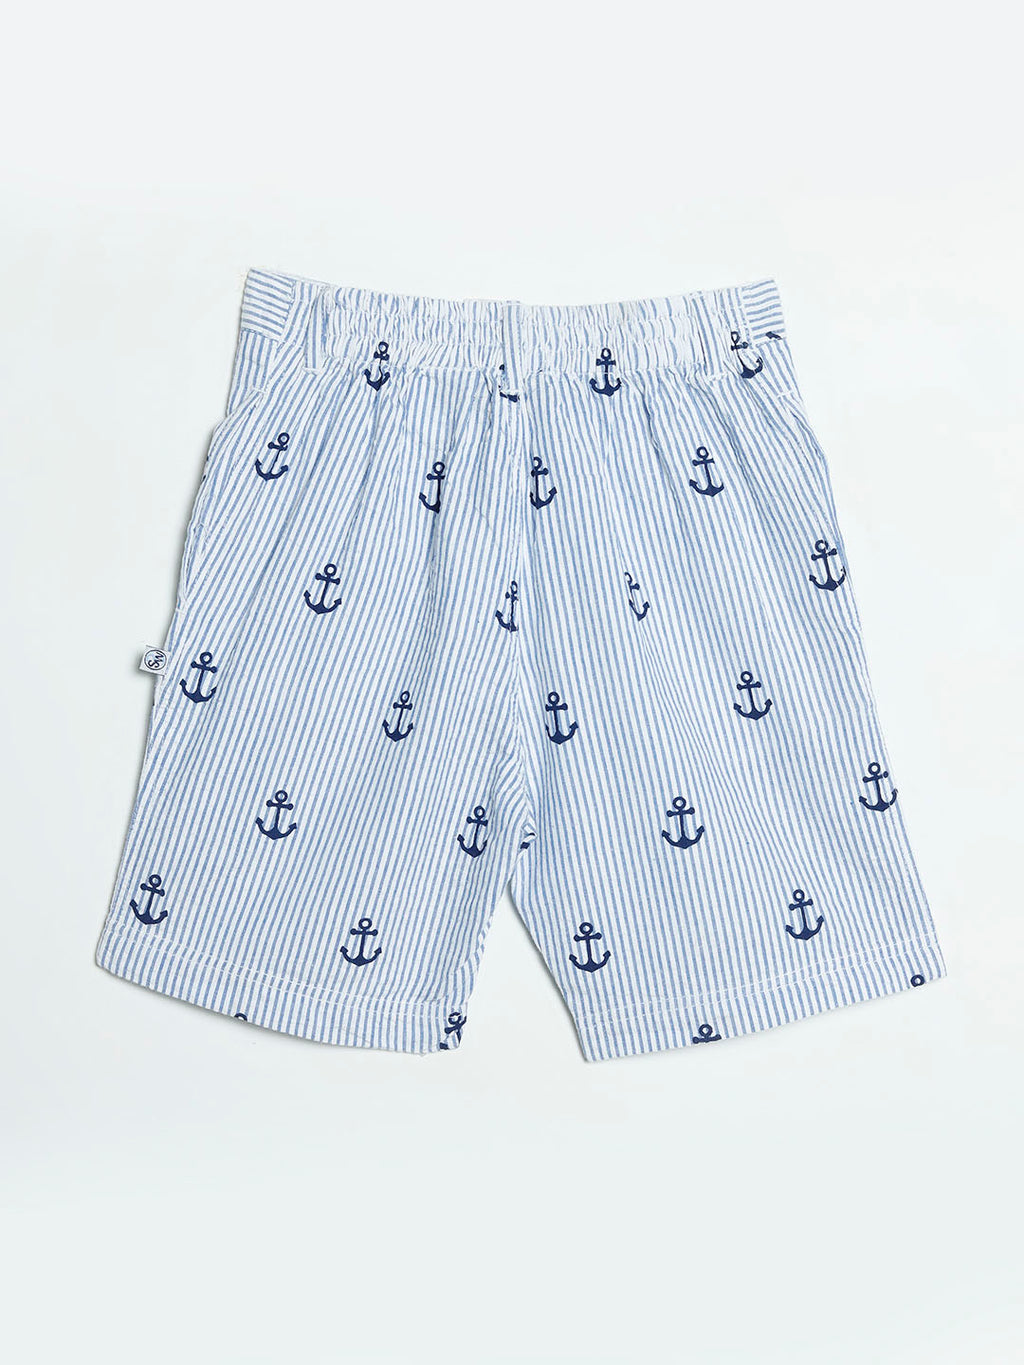 Blue Anchor Shorts